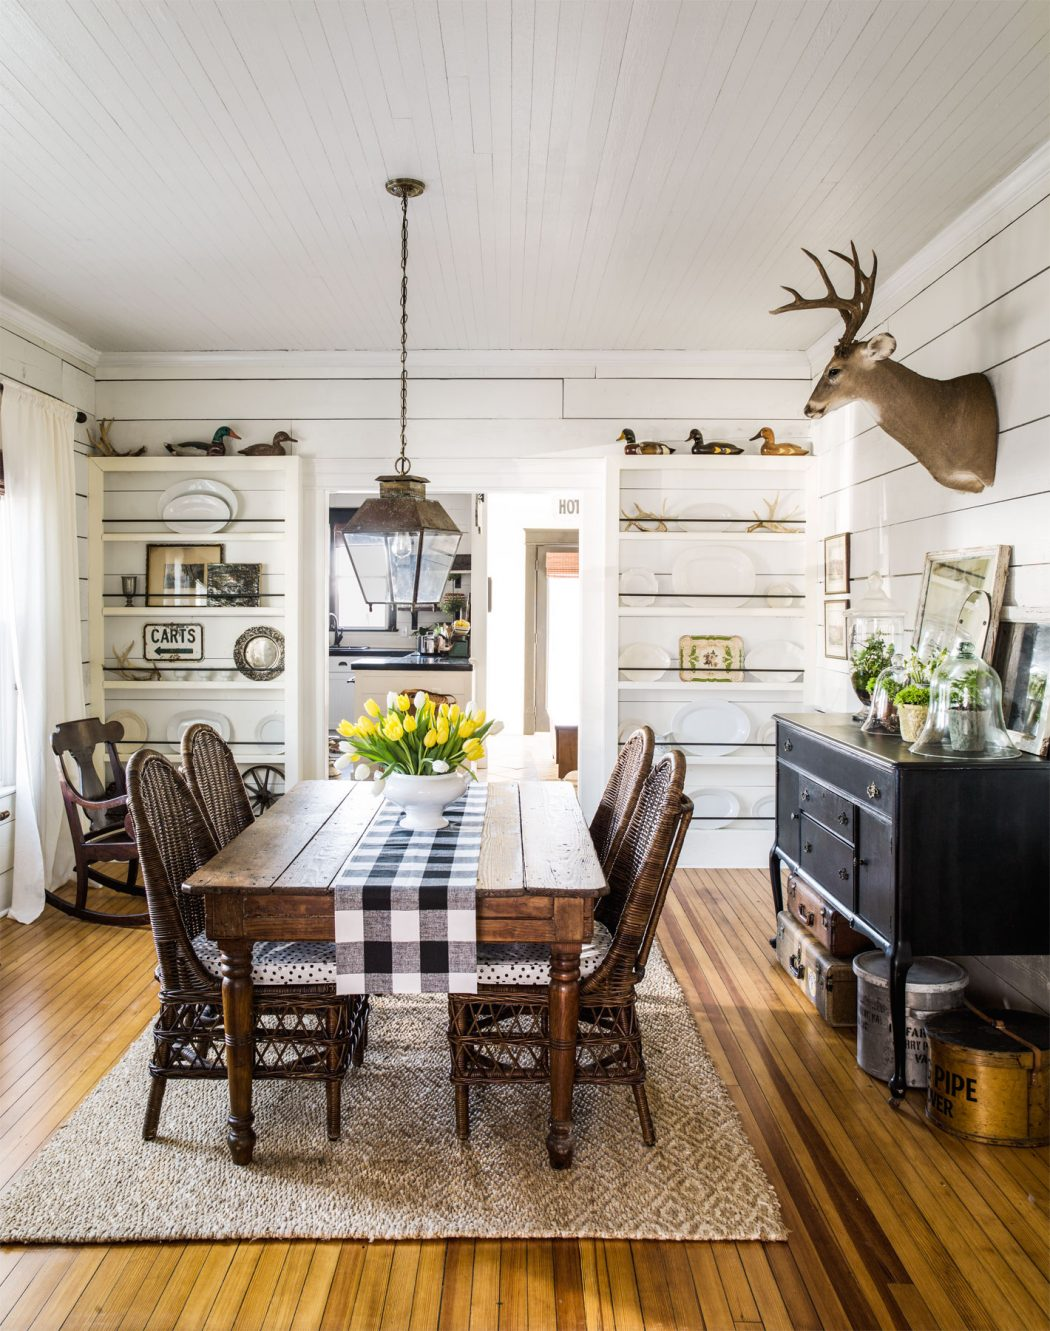 Dine-like-you-are-in-a-farmhouse5 15+ Best Luxurious and Modern Dining Room Design for 2020